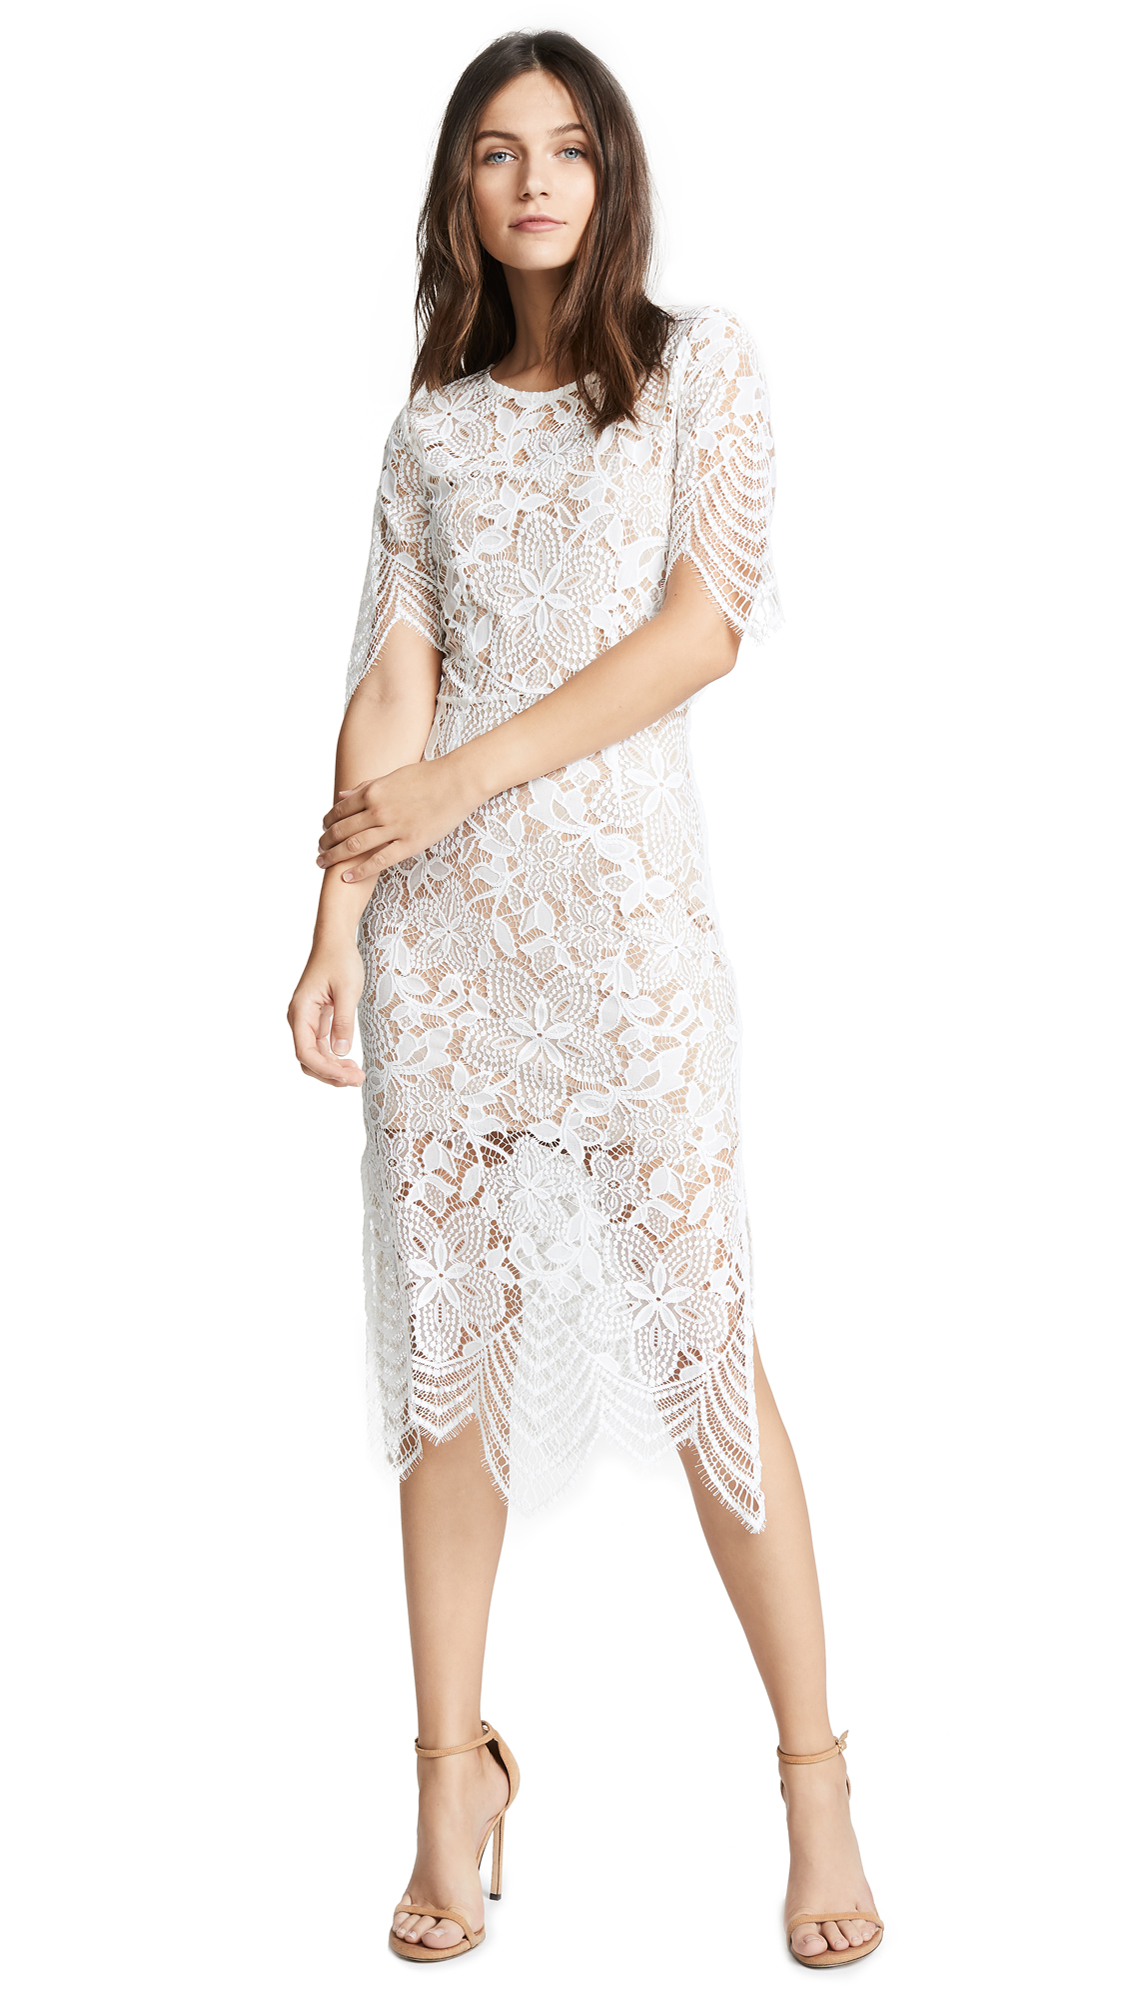 For Love & Lemons Luna Maxi Dress - White